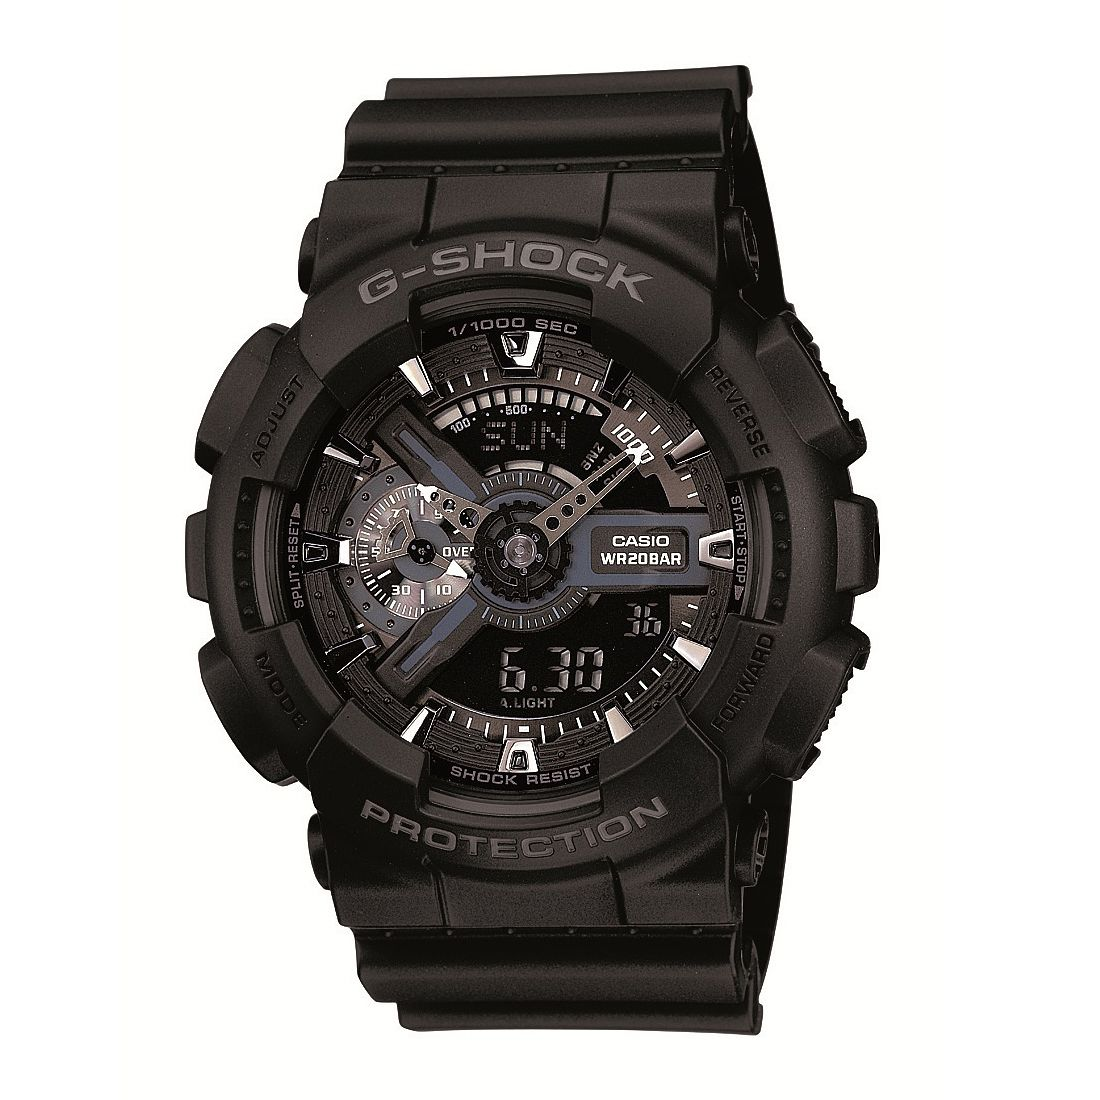 Casio G-Shock Men's Black Rubber Strap Watch - Product number 1781294